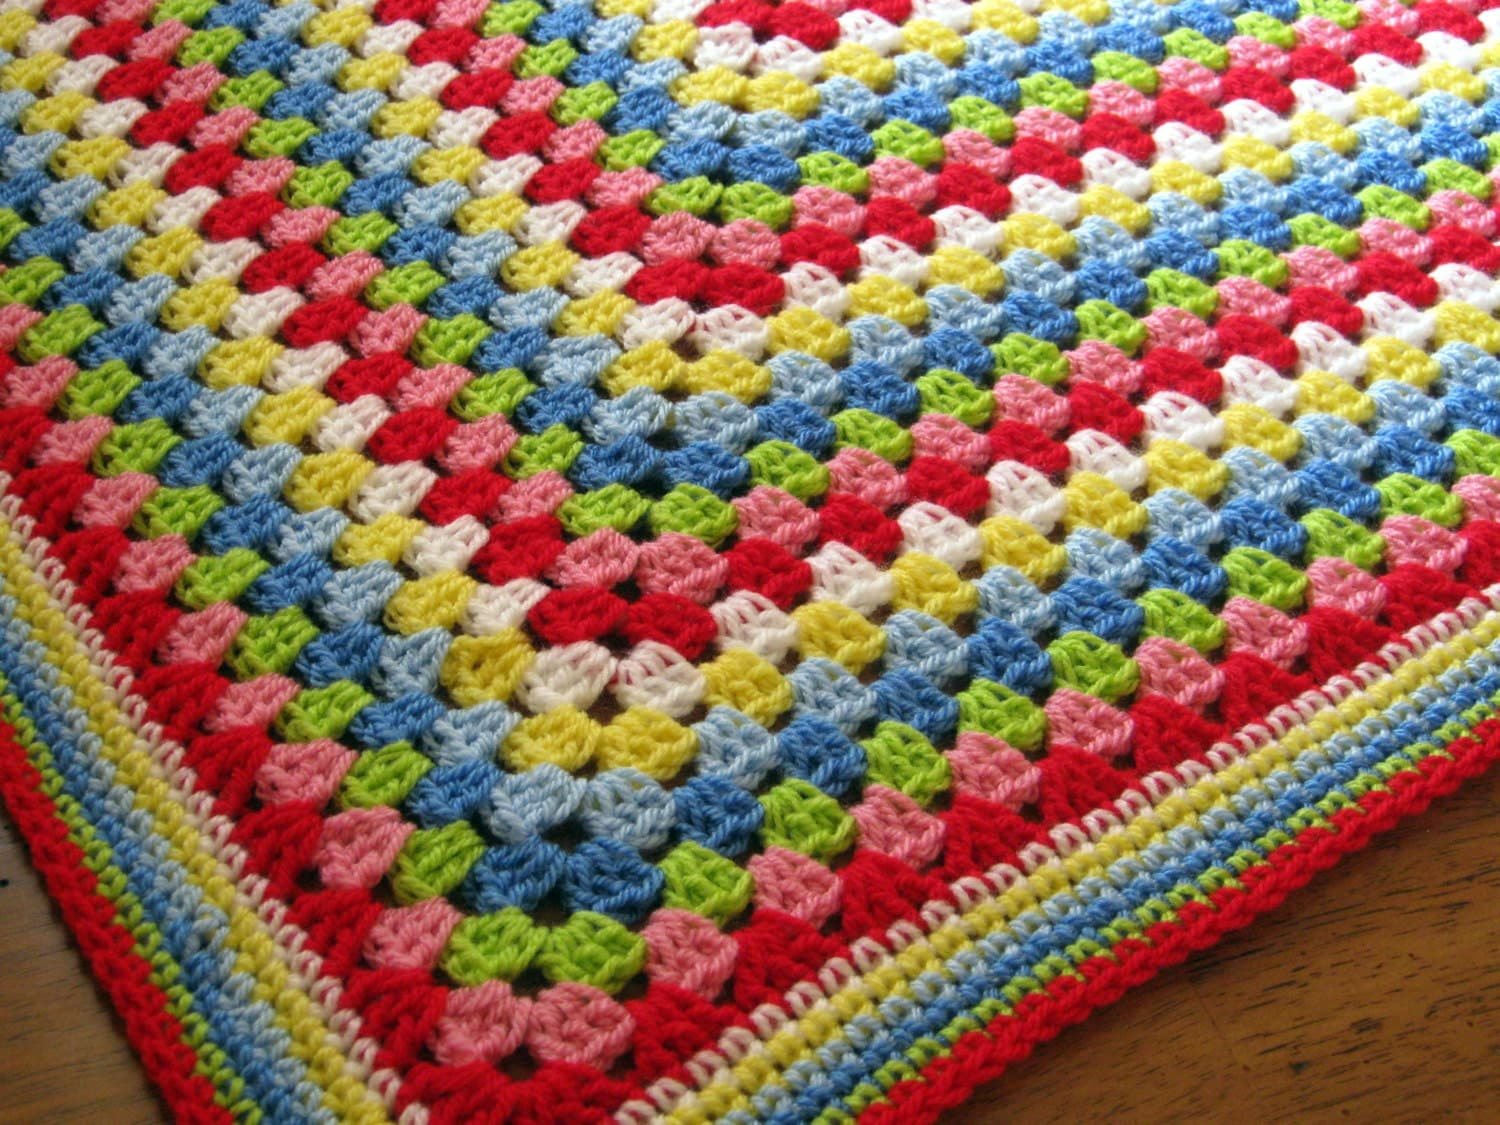 Crocheting Granny Square Blanket : Granny Square Crochet Blanket Cath Kidston Colours by Thesunroomuk